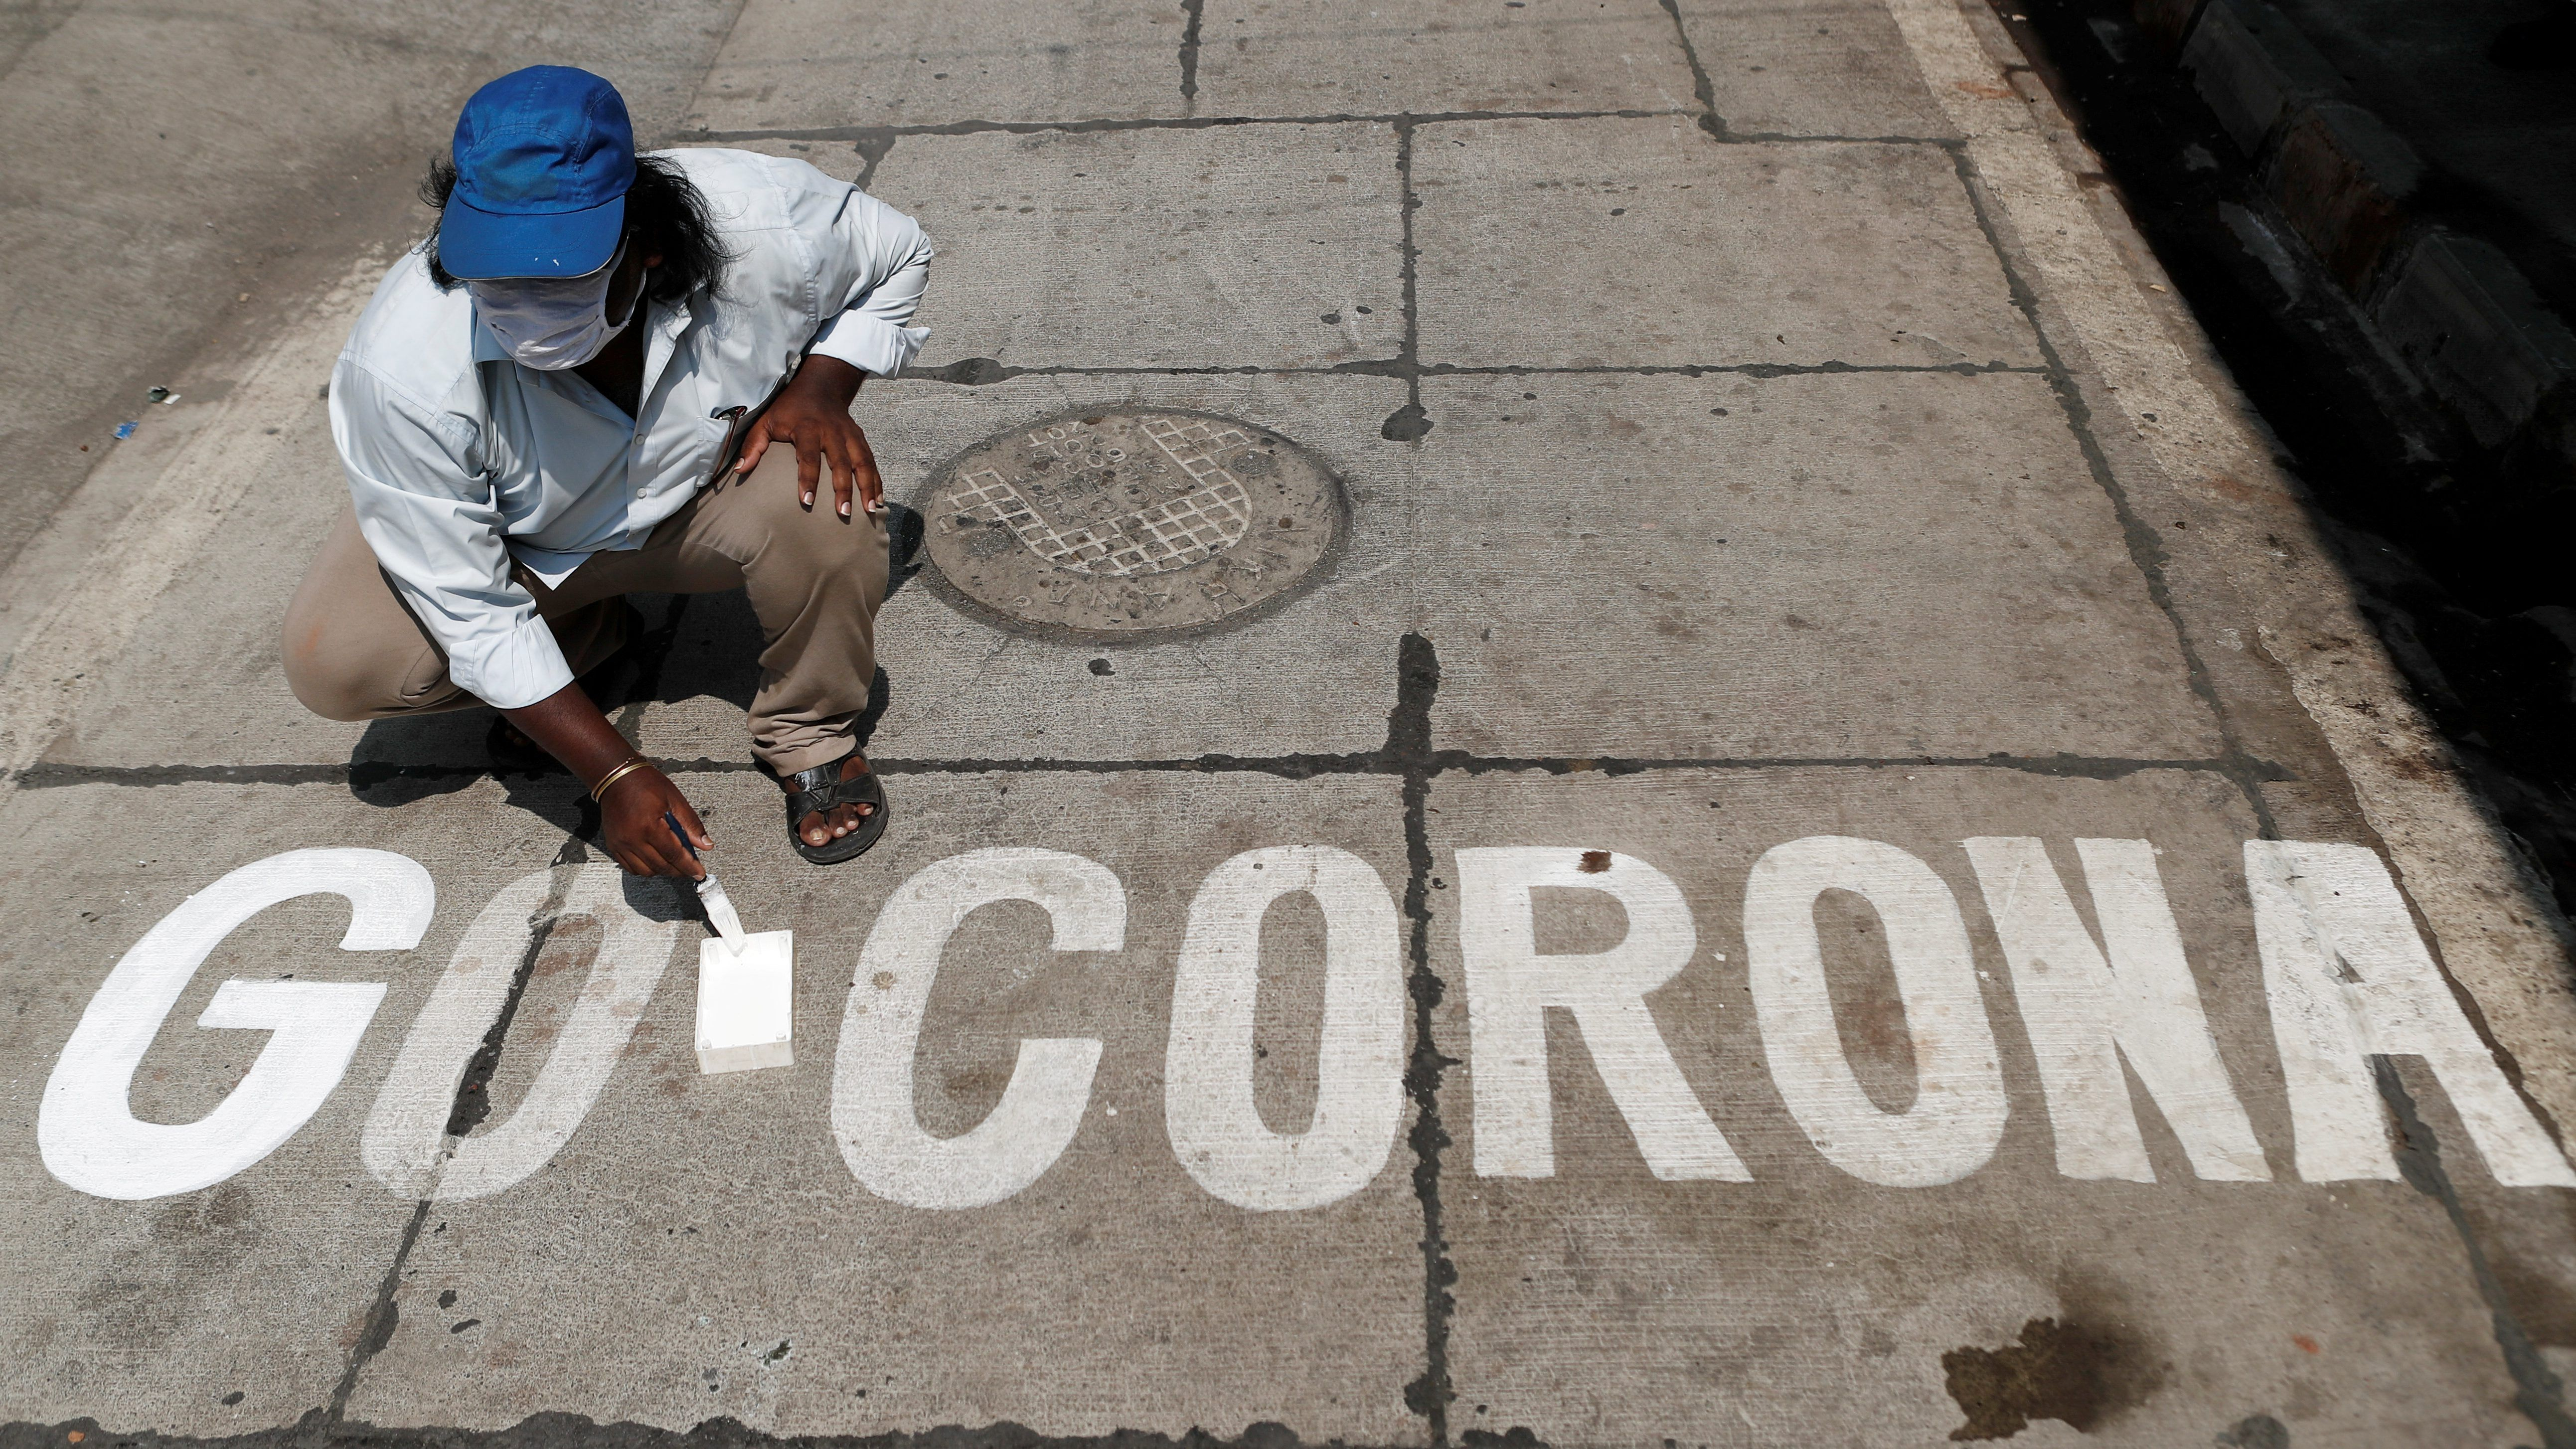 Urban Indians are confident about the coronavirus lockdown but anxious about jobs